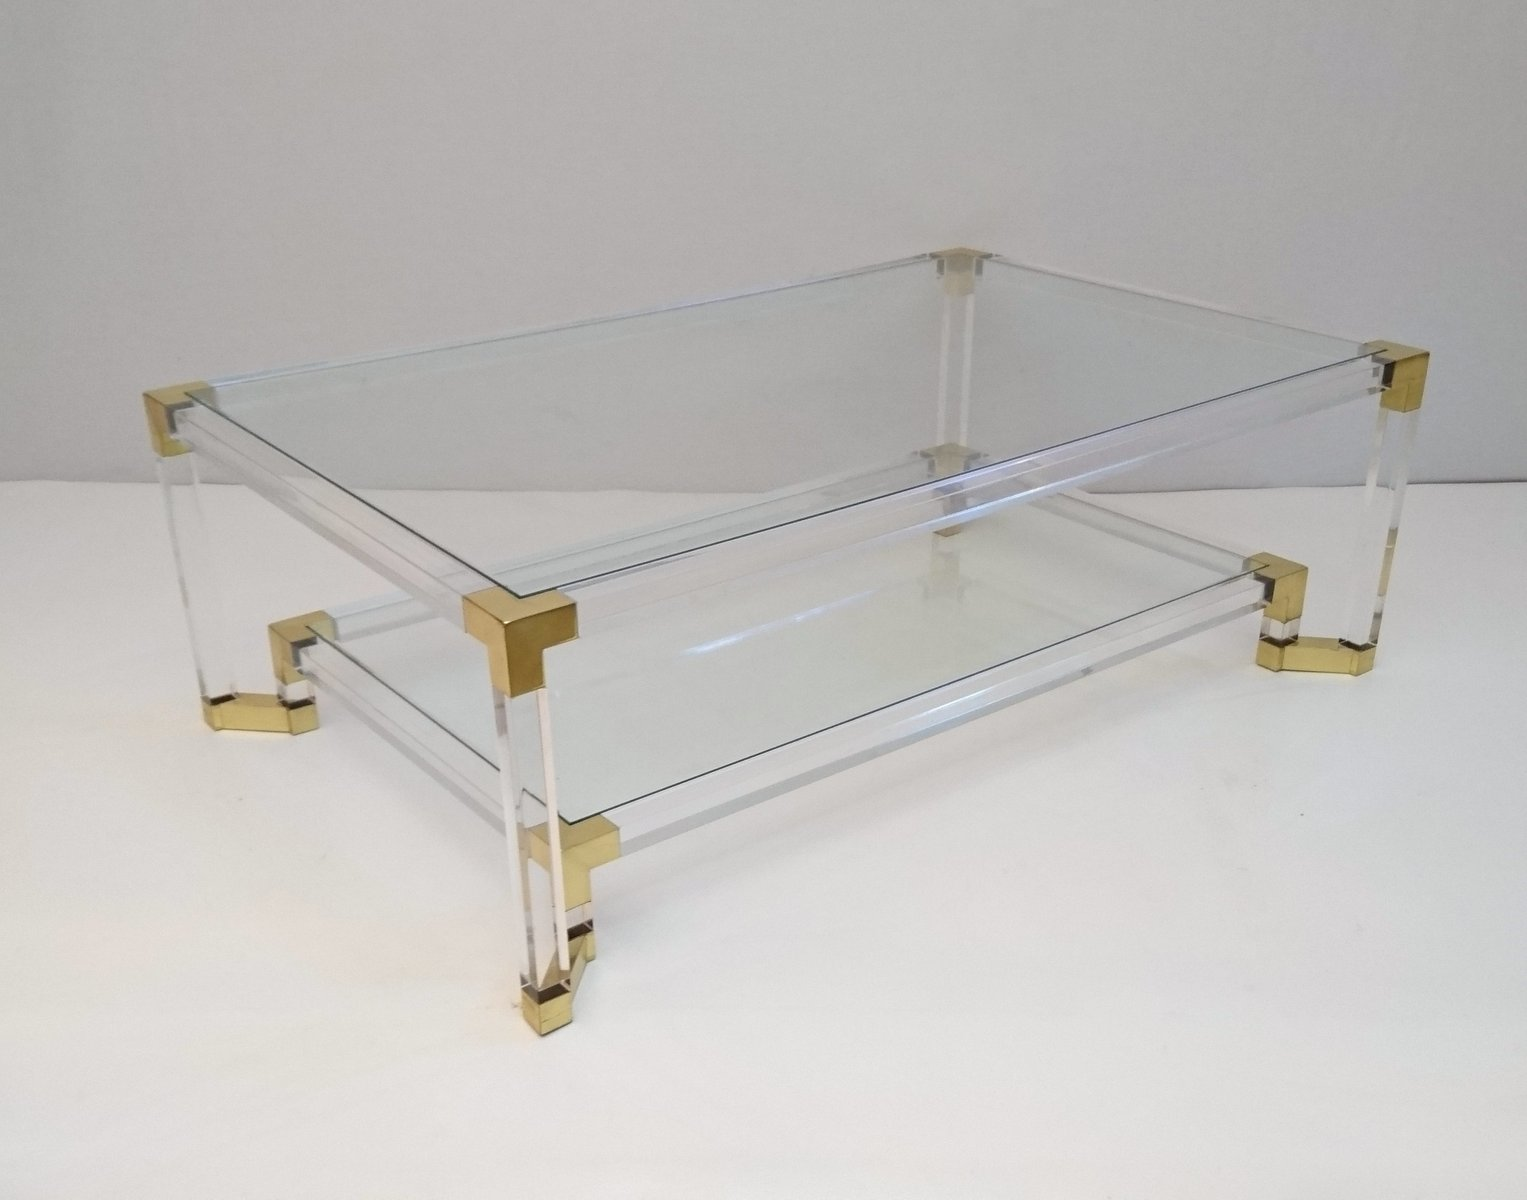 Vintage lucite and brass two tiered coffee table for sale at pamono vintage lucite and brass two tiered coffee table geotapseo Choice Image